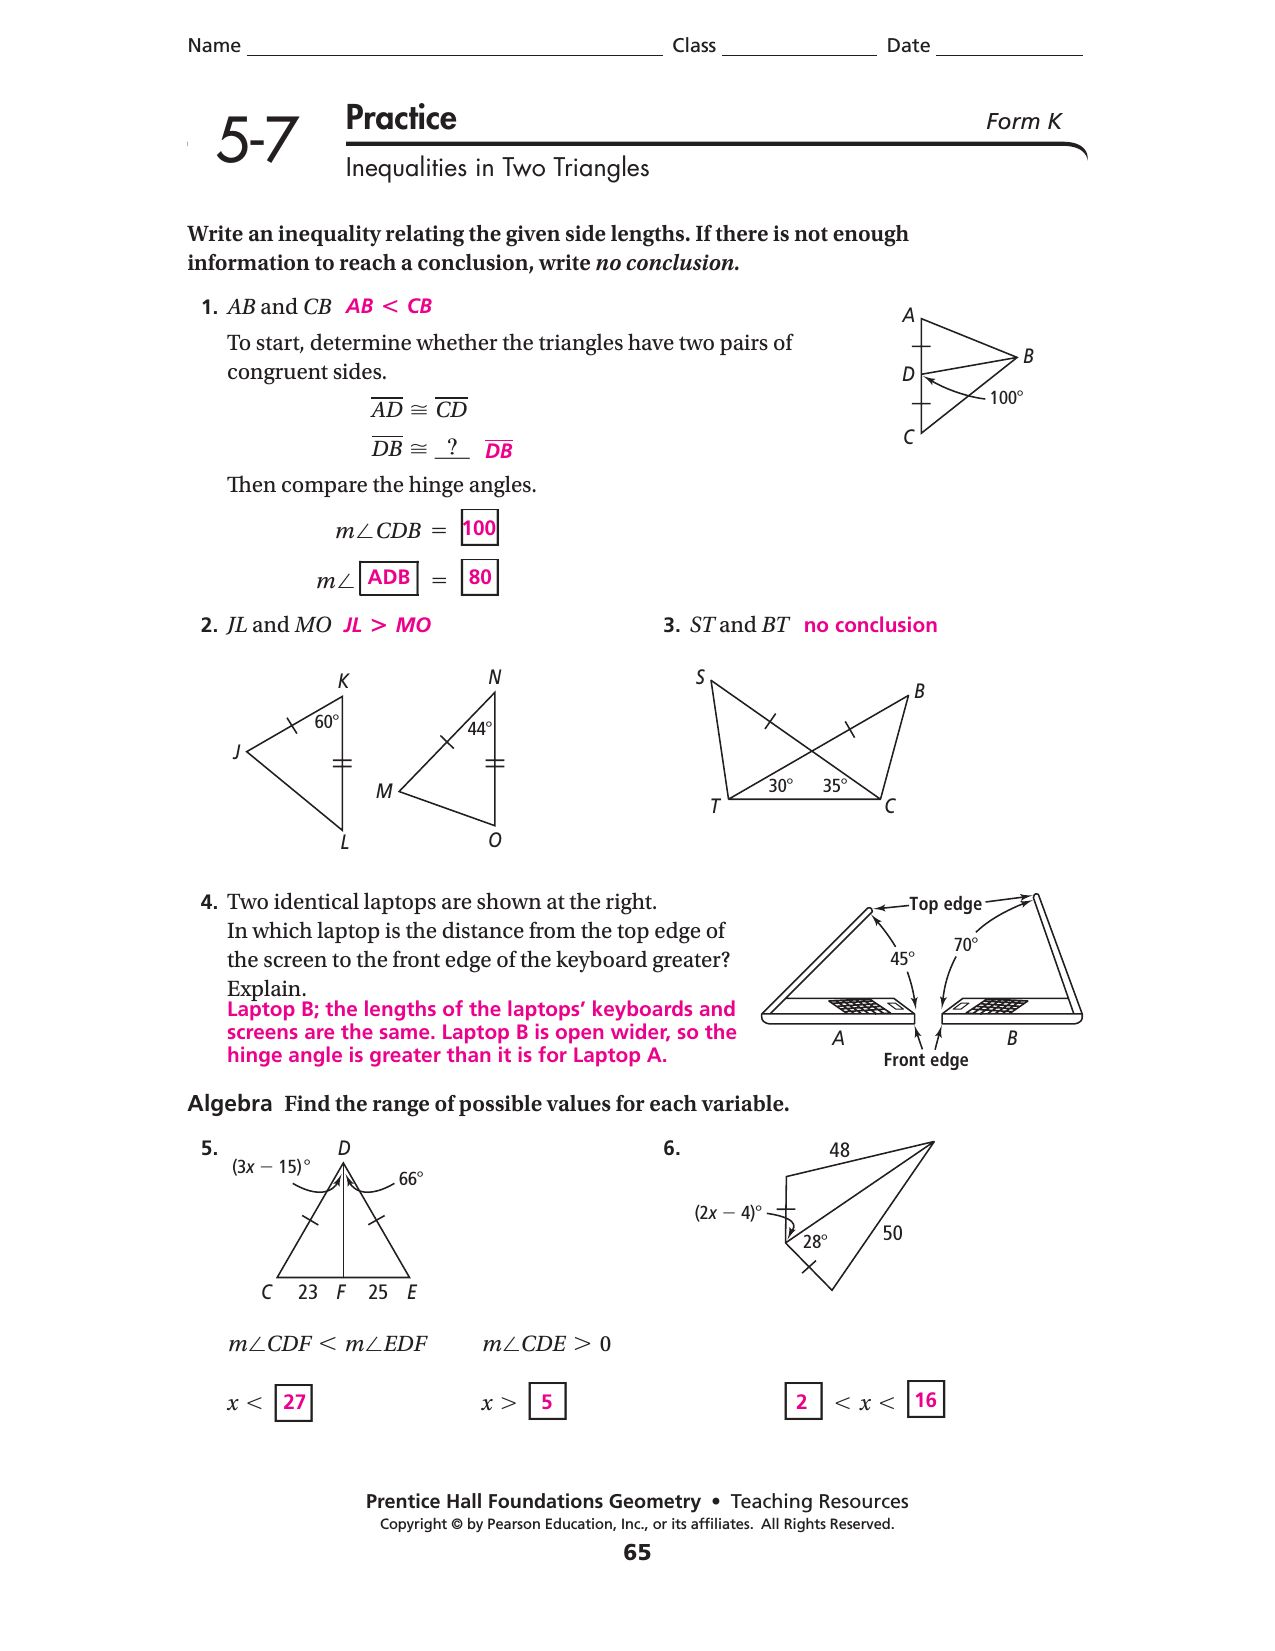 Prentice Hall Pre Algebra Worksheet